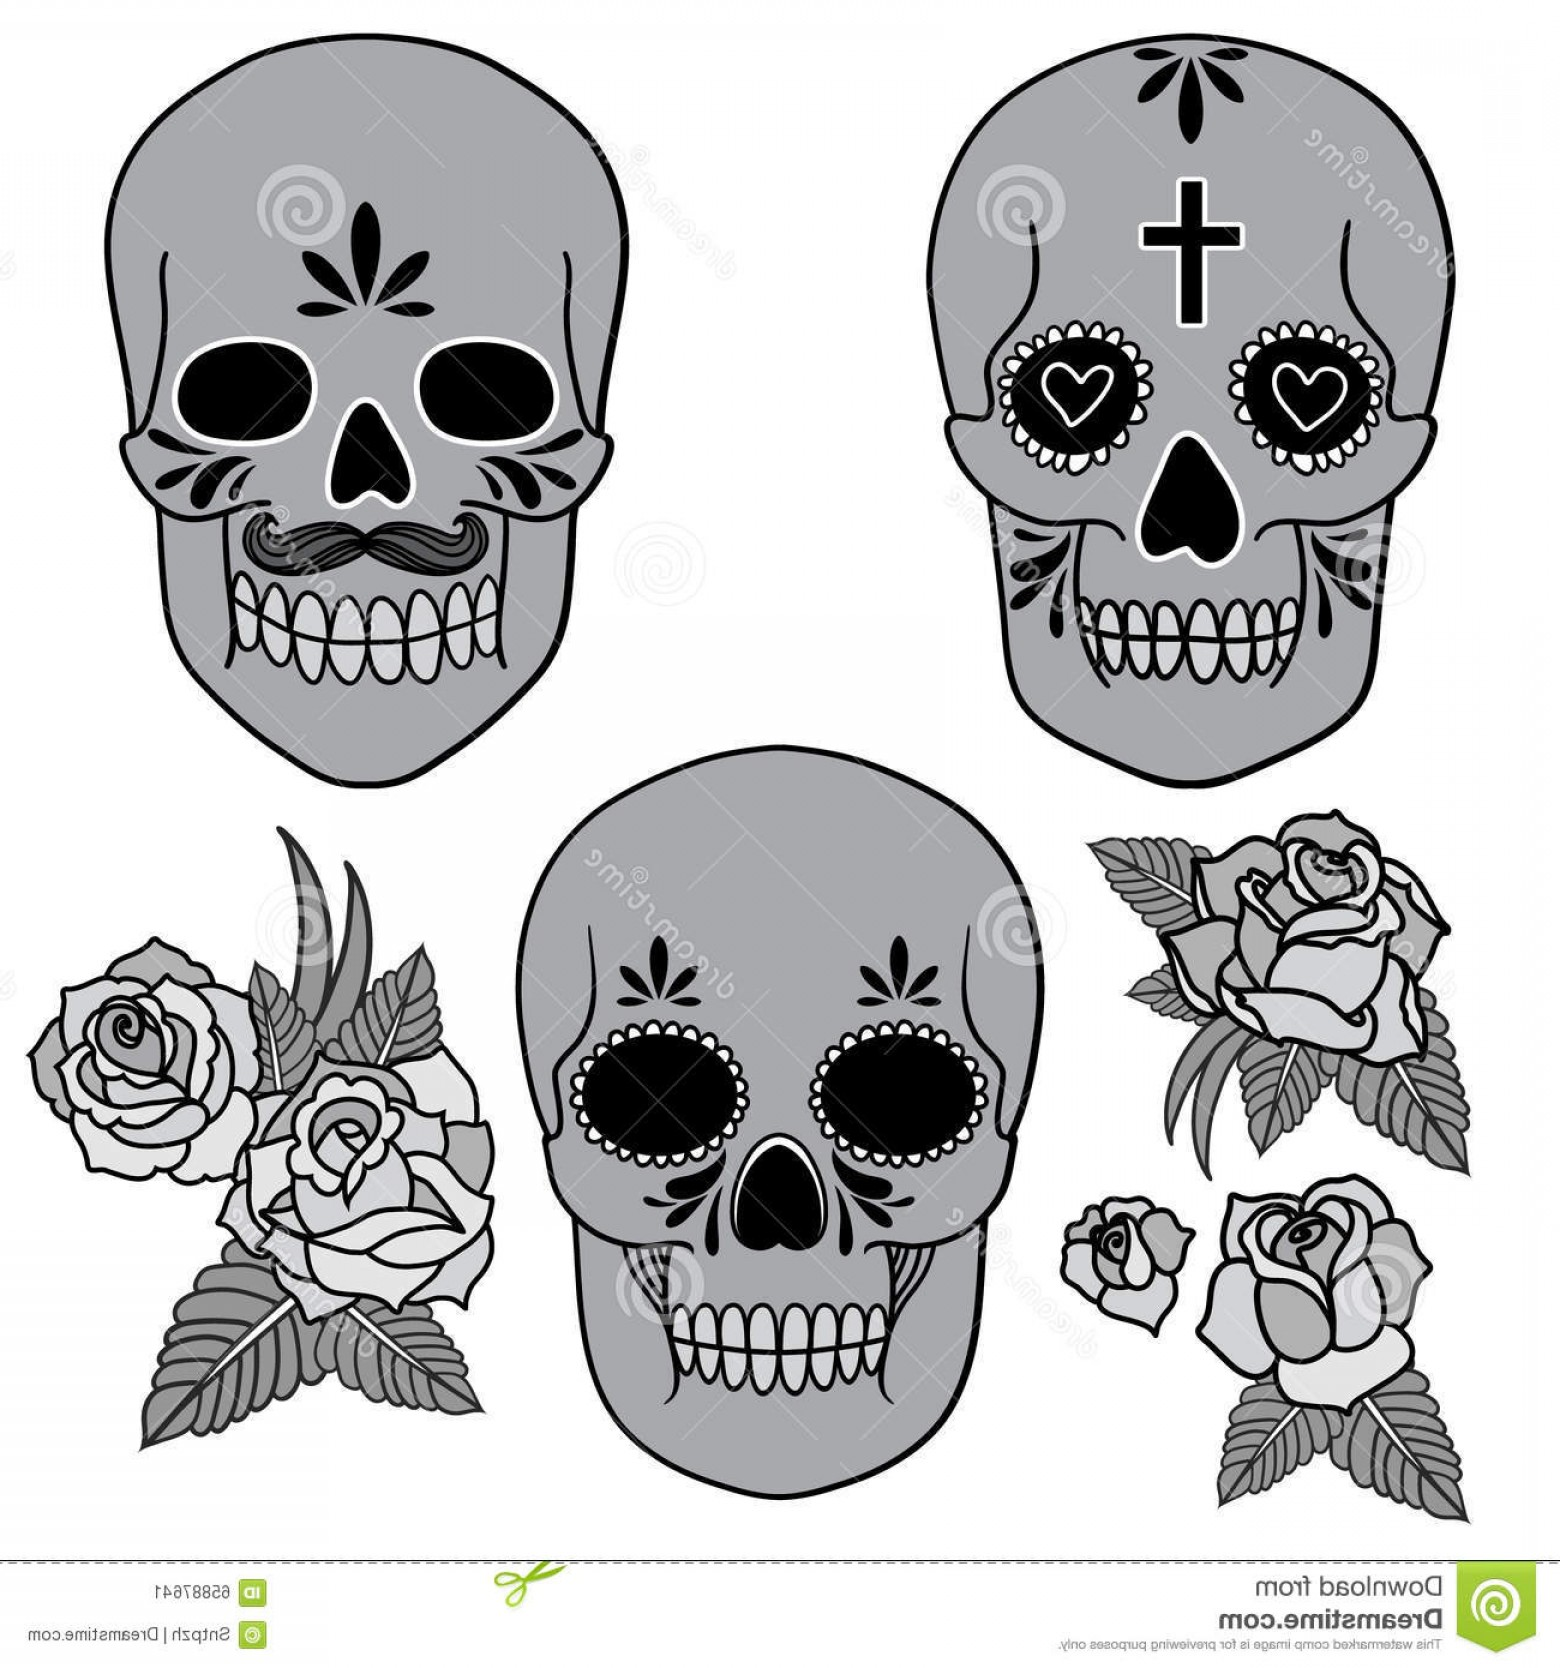 His And Hers Skulls Vector: Stock Illustration Day Dead Set Skulls Vector Illustration Image